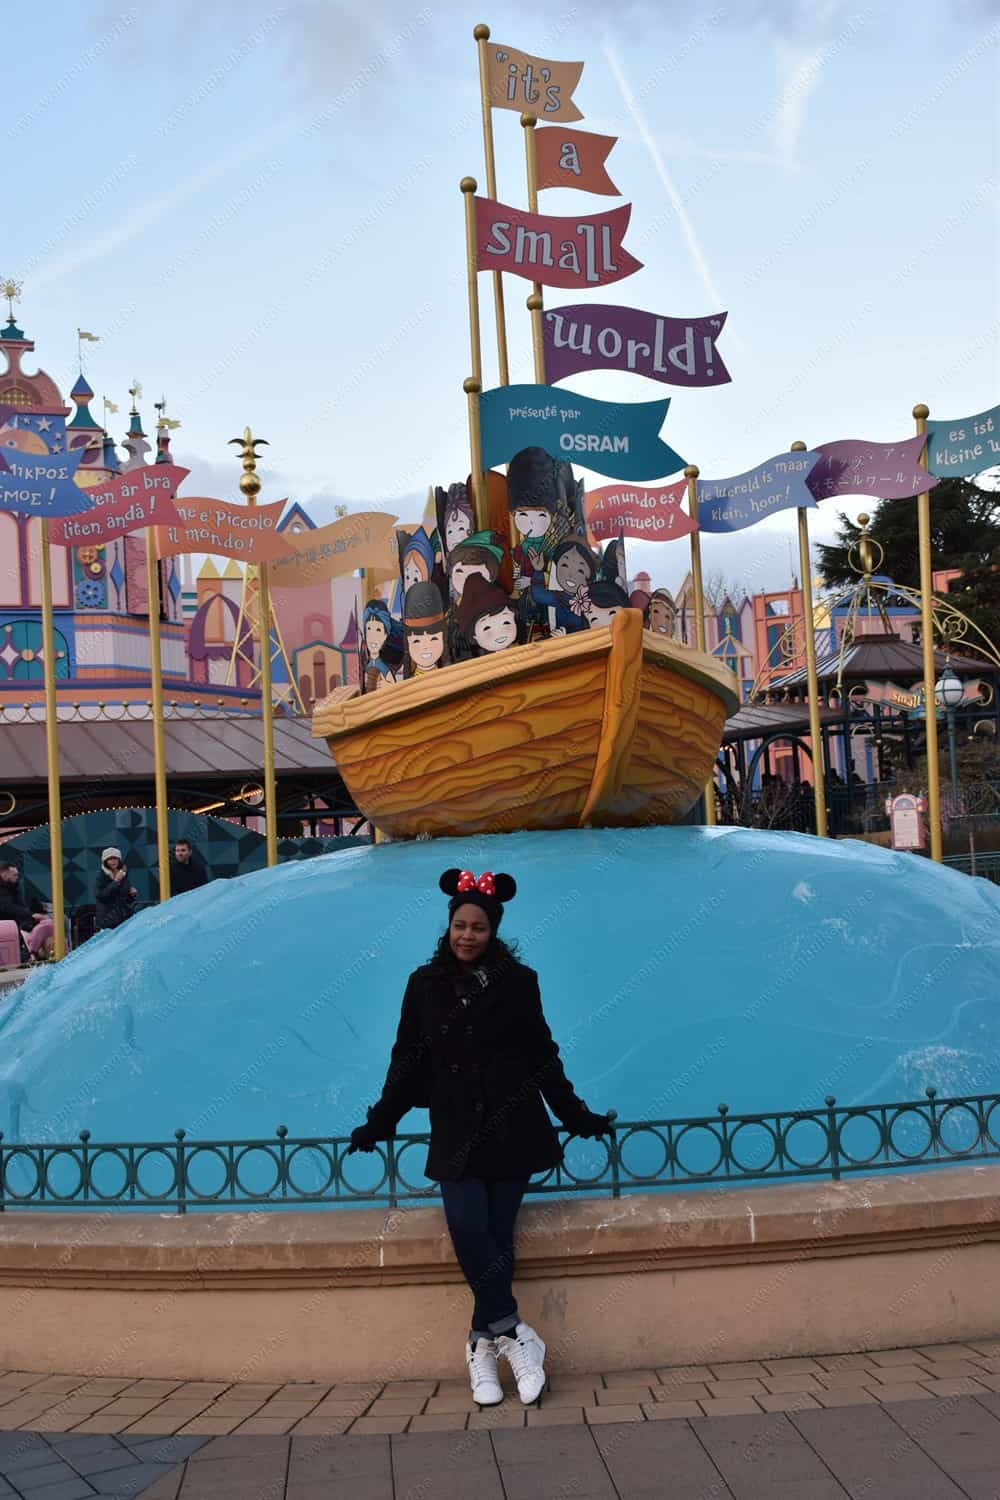 Disney Park Paris